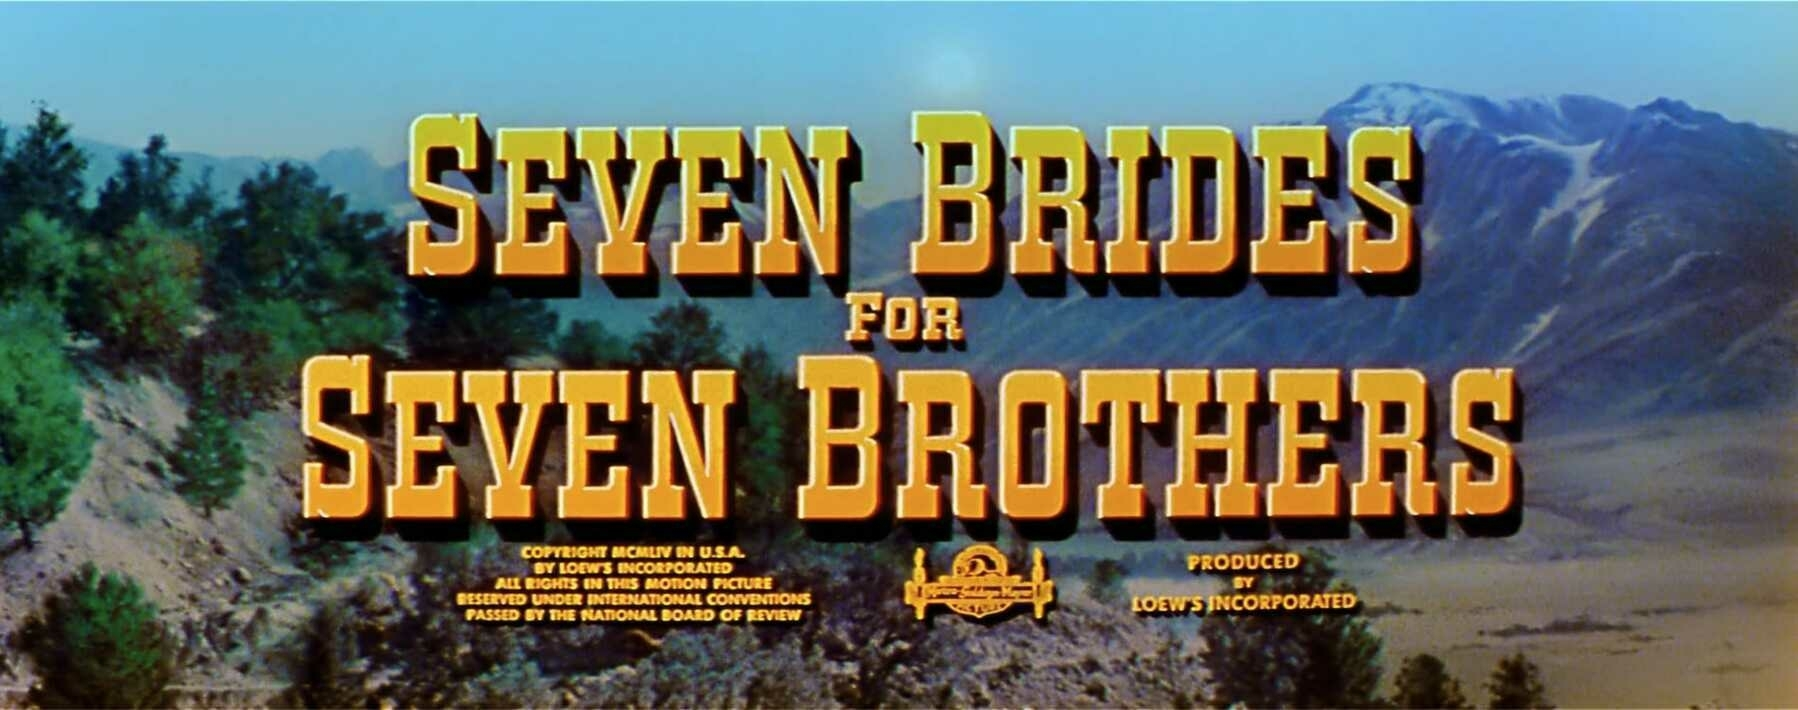 The title card for Seven Brides for Seven Brothers.